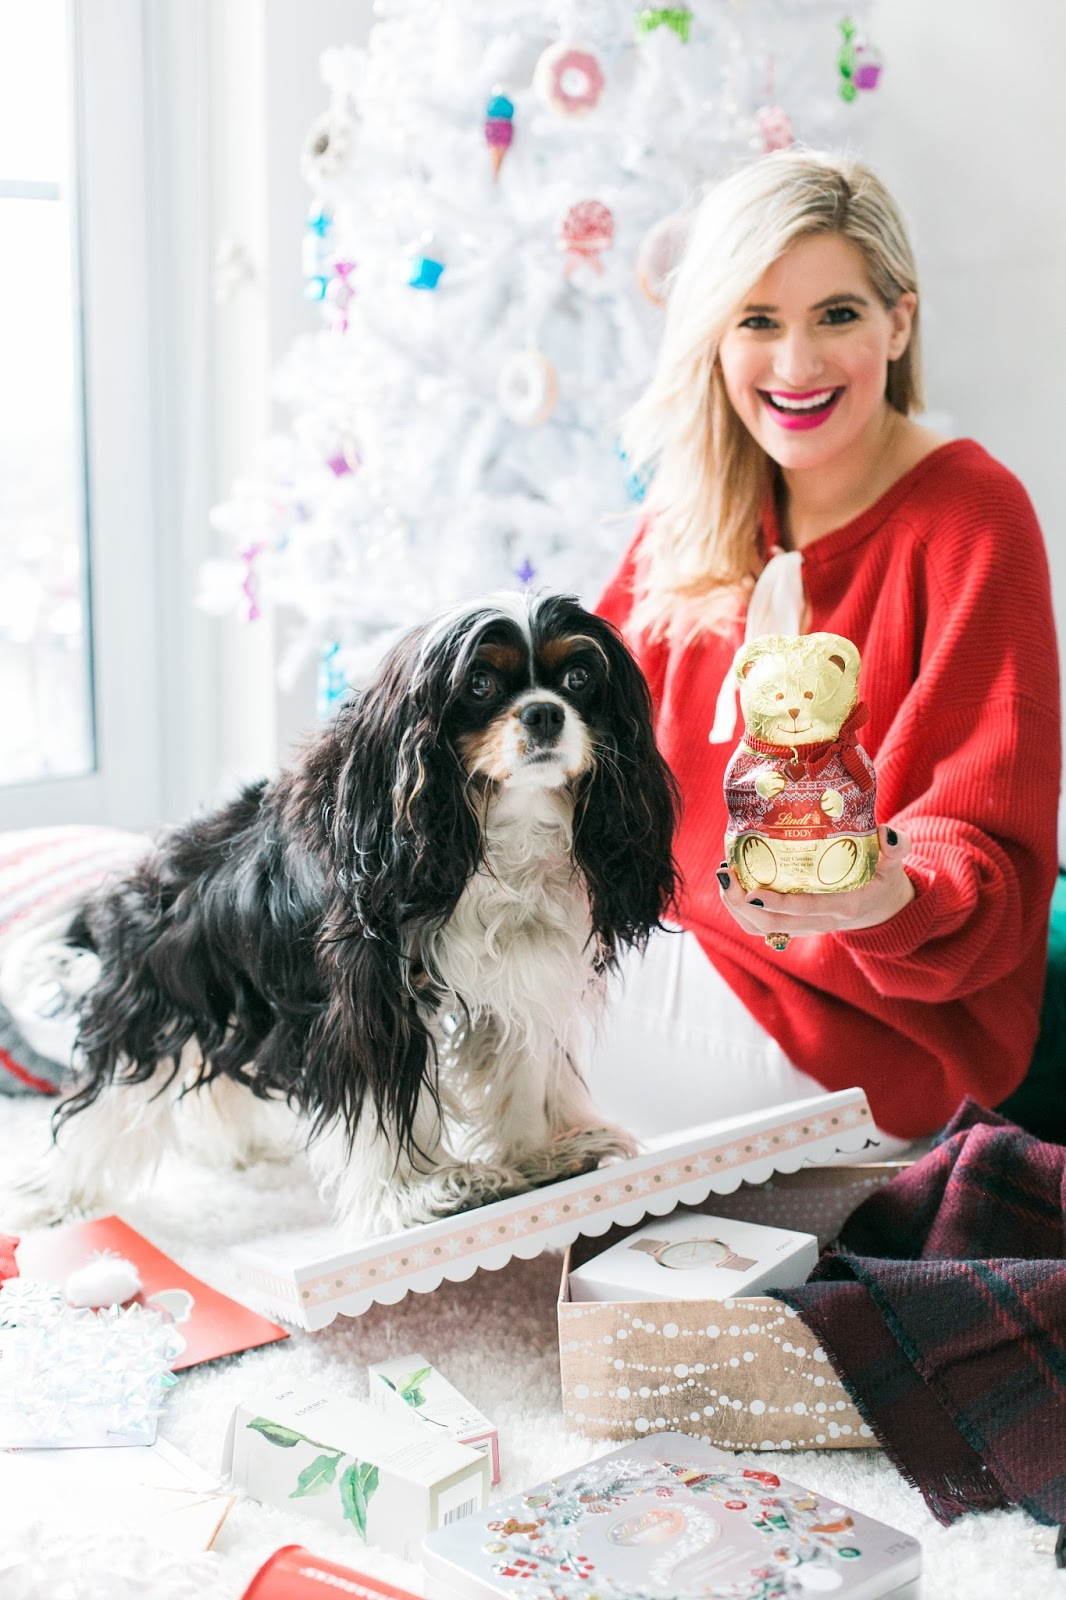 Bijuleni - Holiday Gift Guide For Her With Holt Renfrew Centre - Cavalier King Charles Spaniel puppy